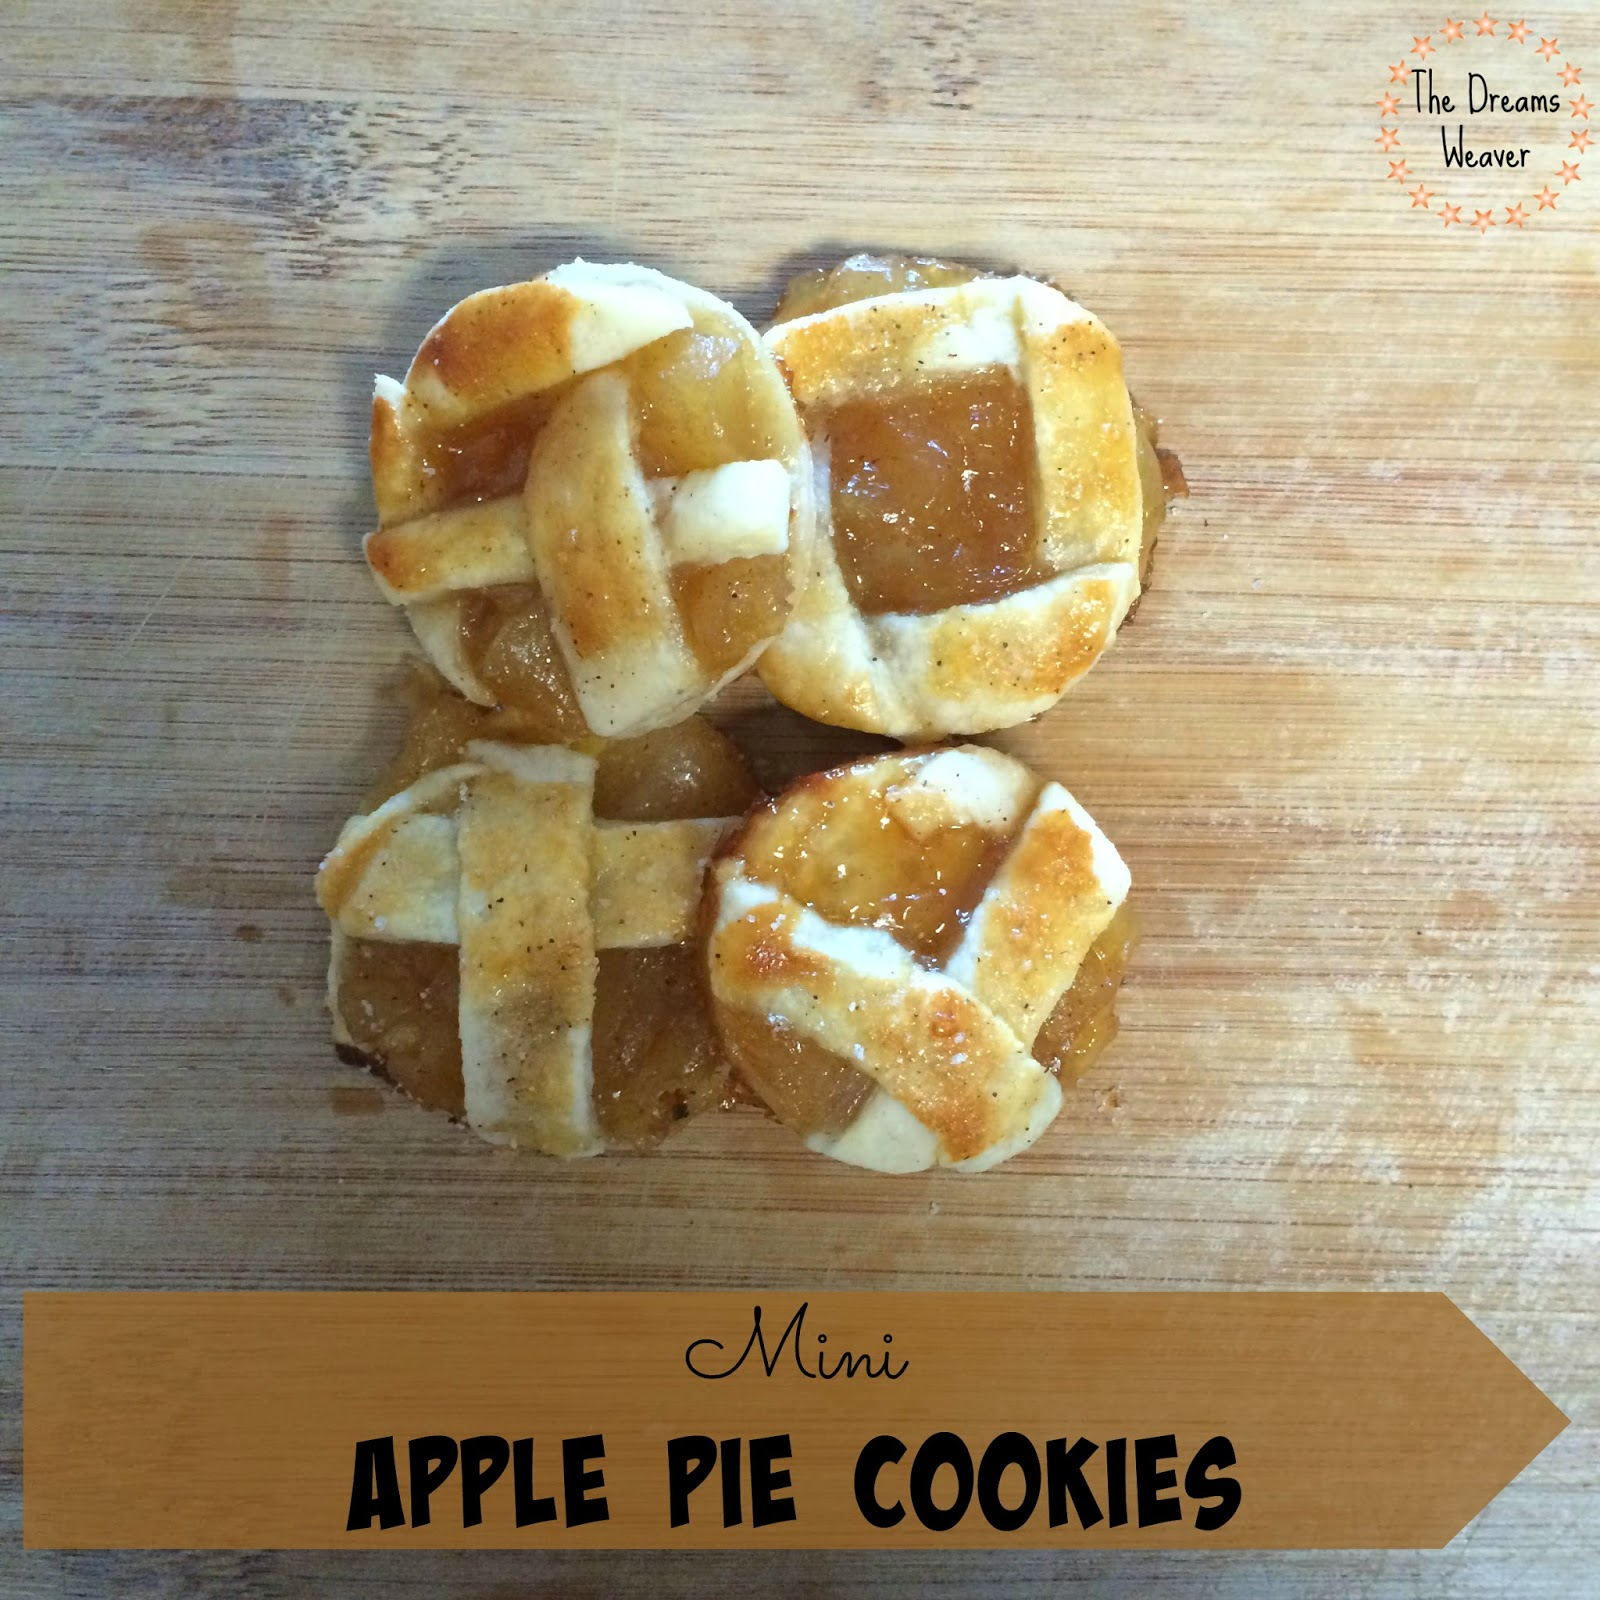 Mini Apple Pie Cookies